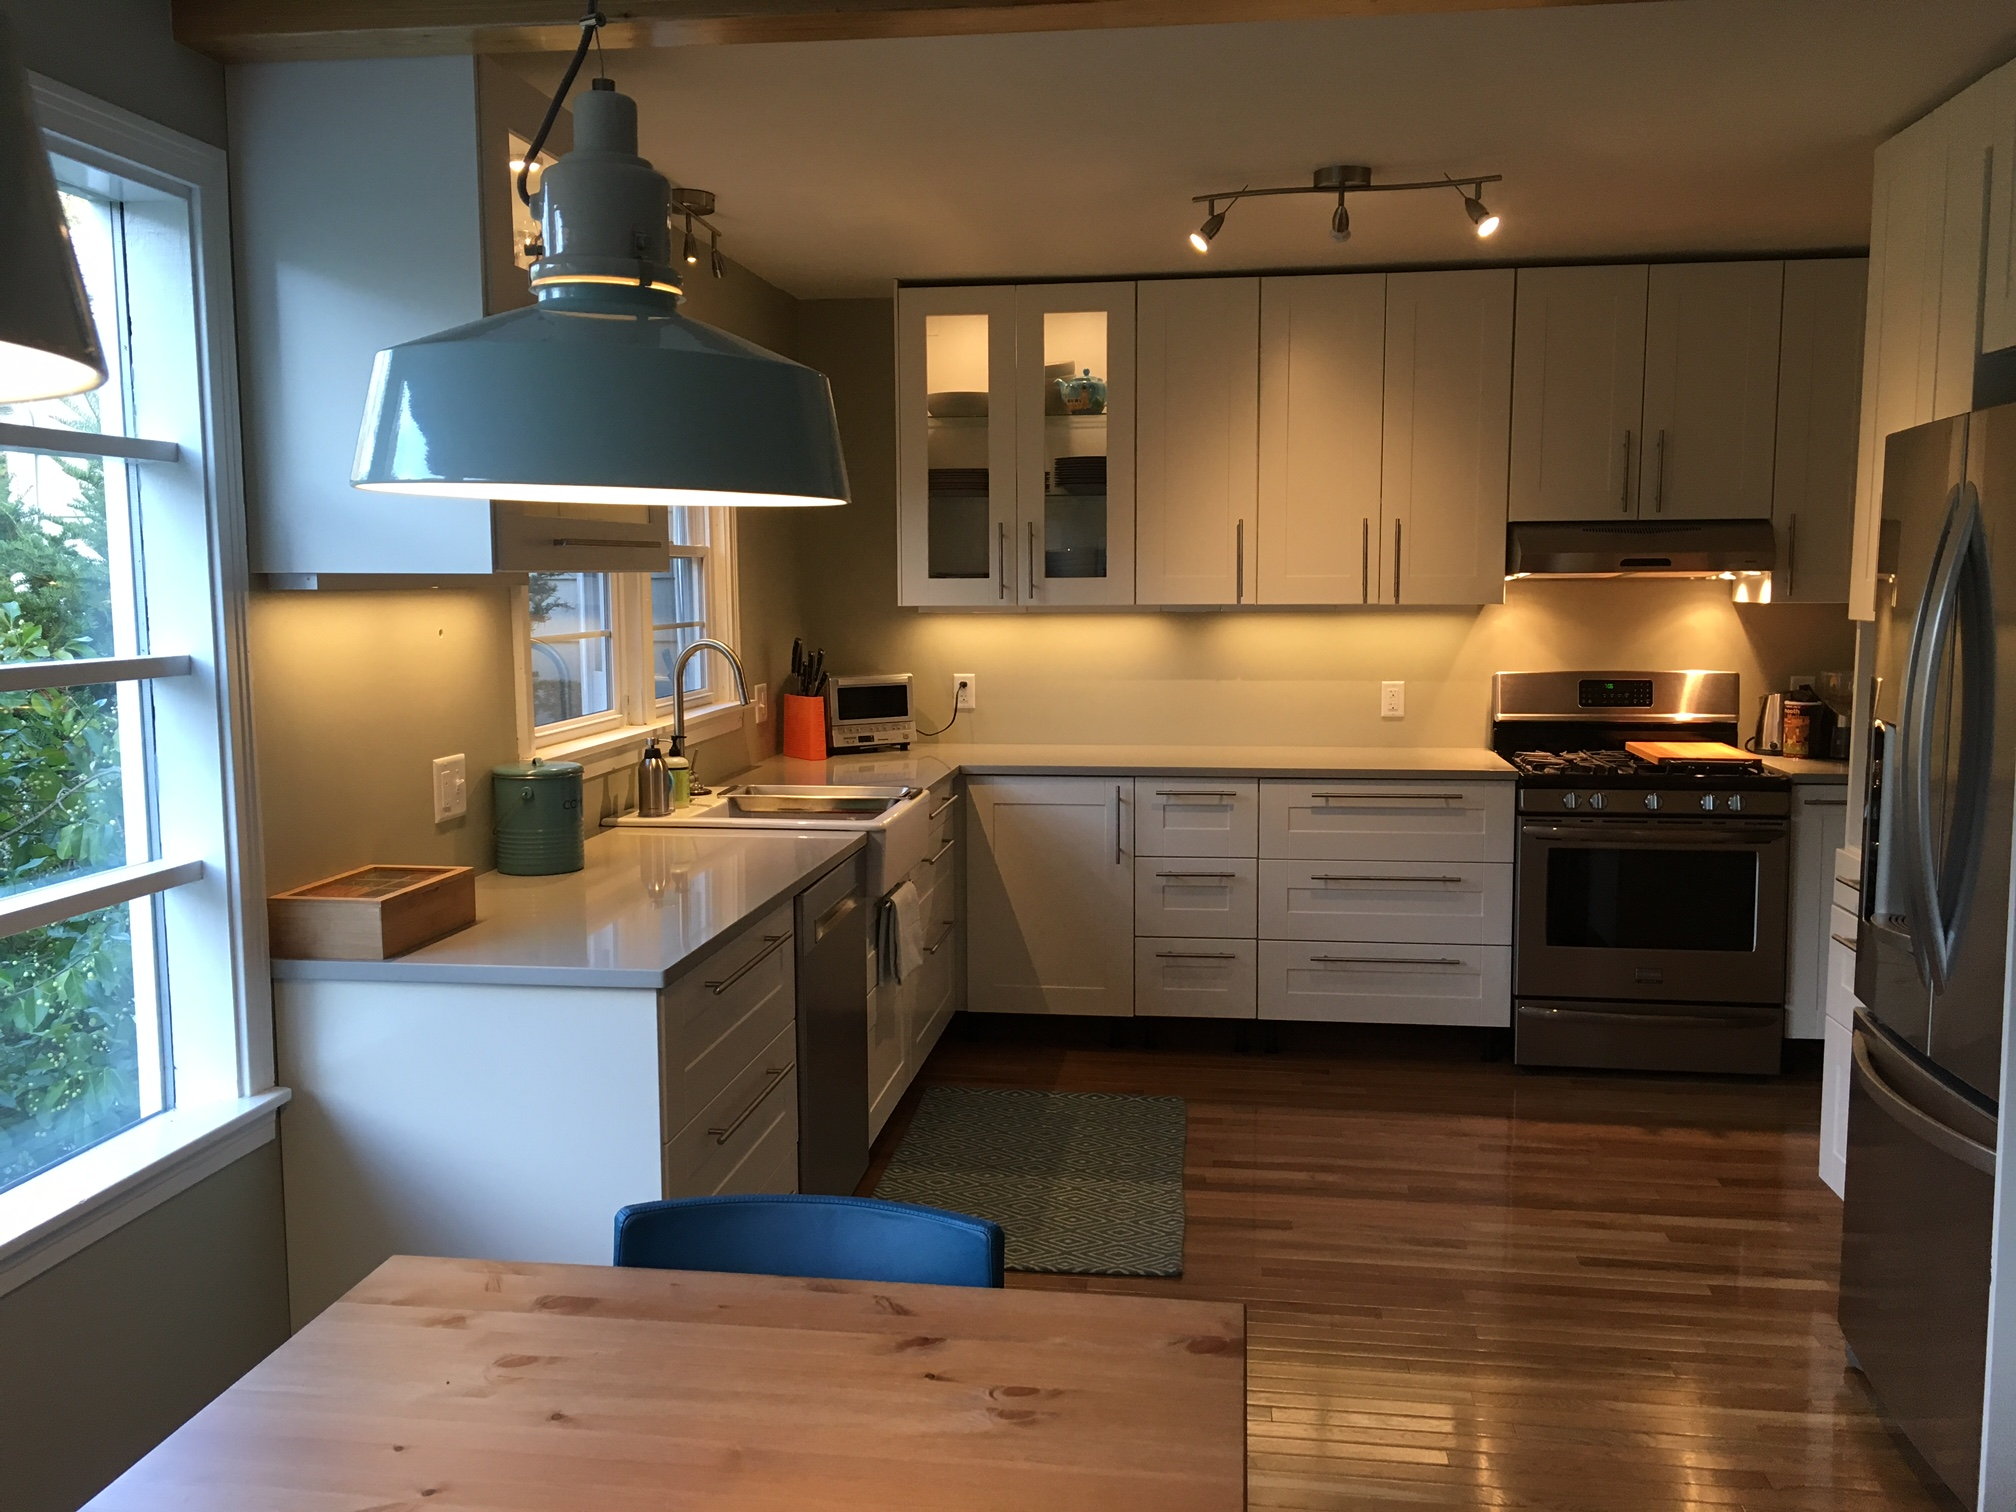 A gorgeous ikea kitchen renovation in upstate new york for New kitchen renovation